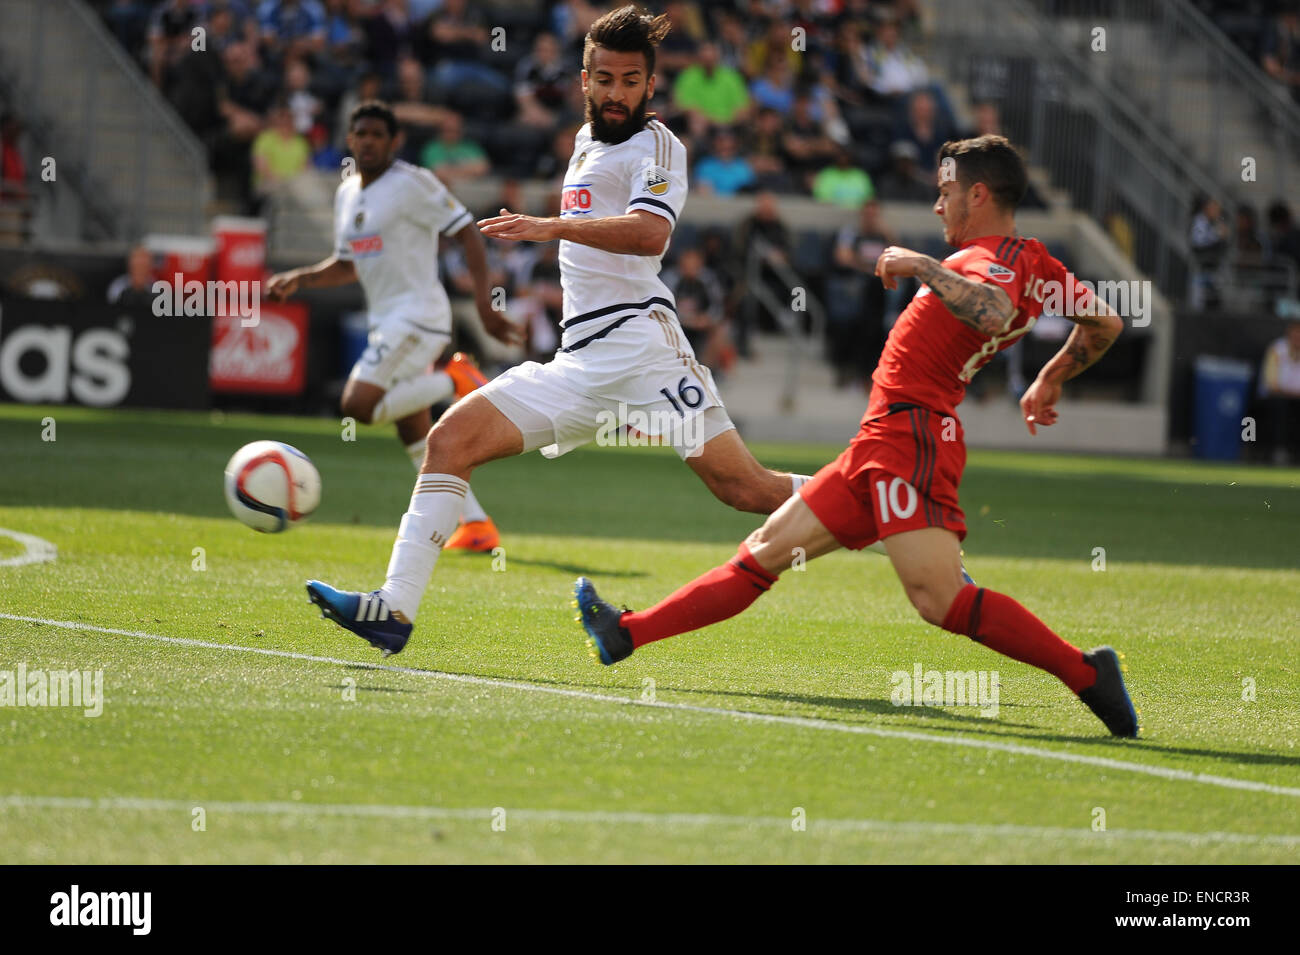 Chester, Pennsylvania, USA. 2nd May, 2015. Philadelphia Union player, RICHIE MARQUEZ (16), and Toronto player, SEBASTIEN Stock Photo